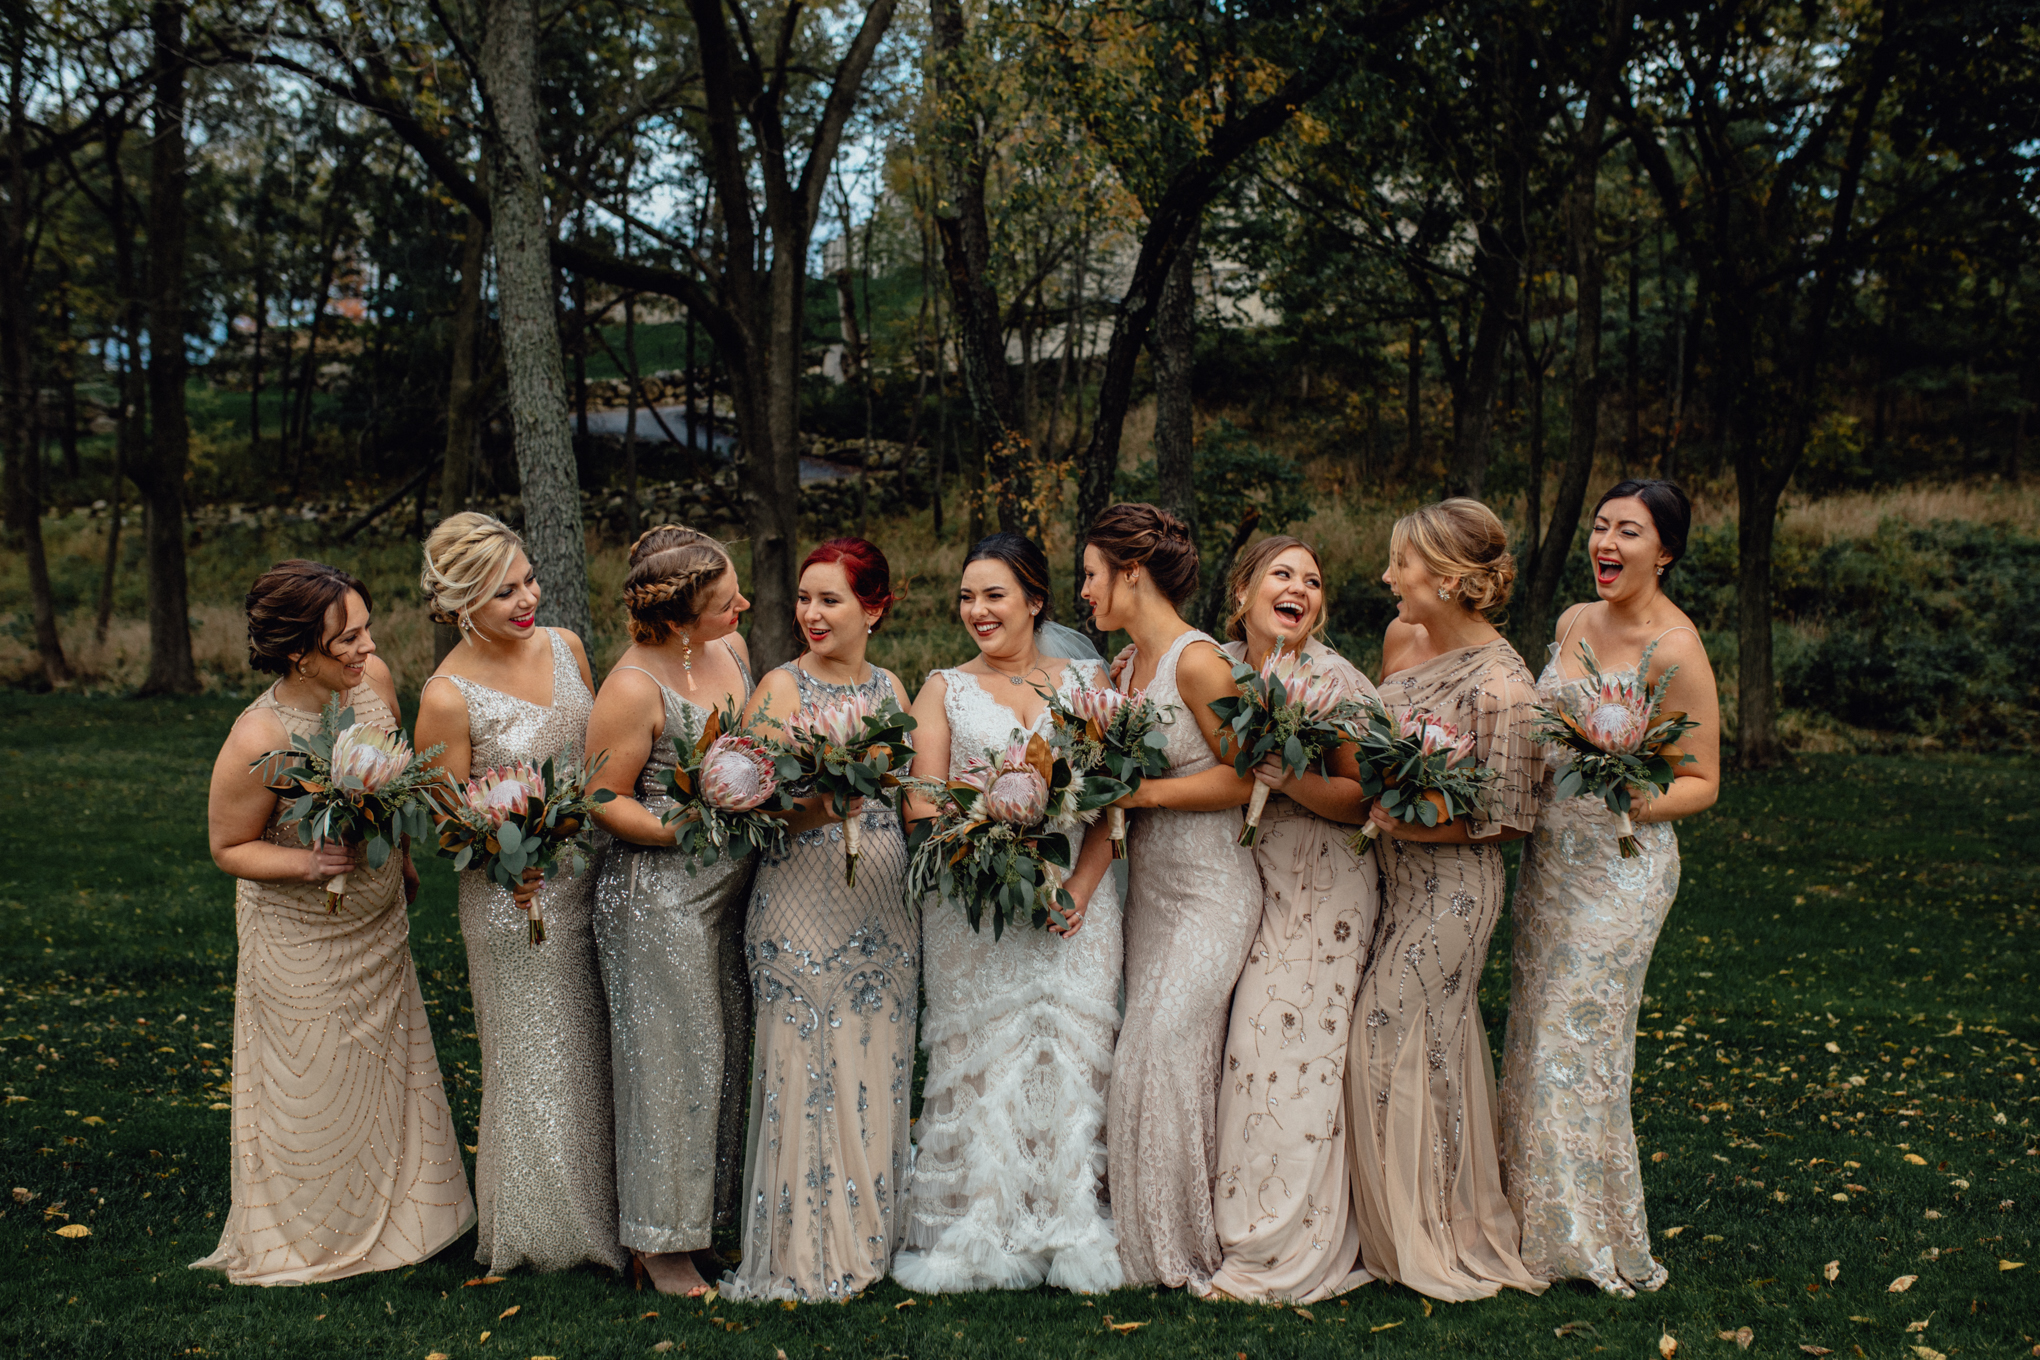 bridesmaids laughing with bouquets in grass